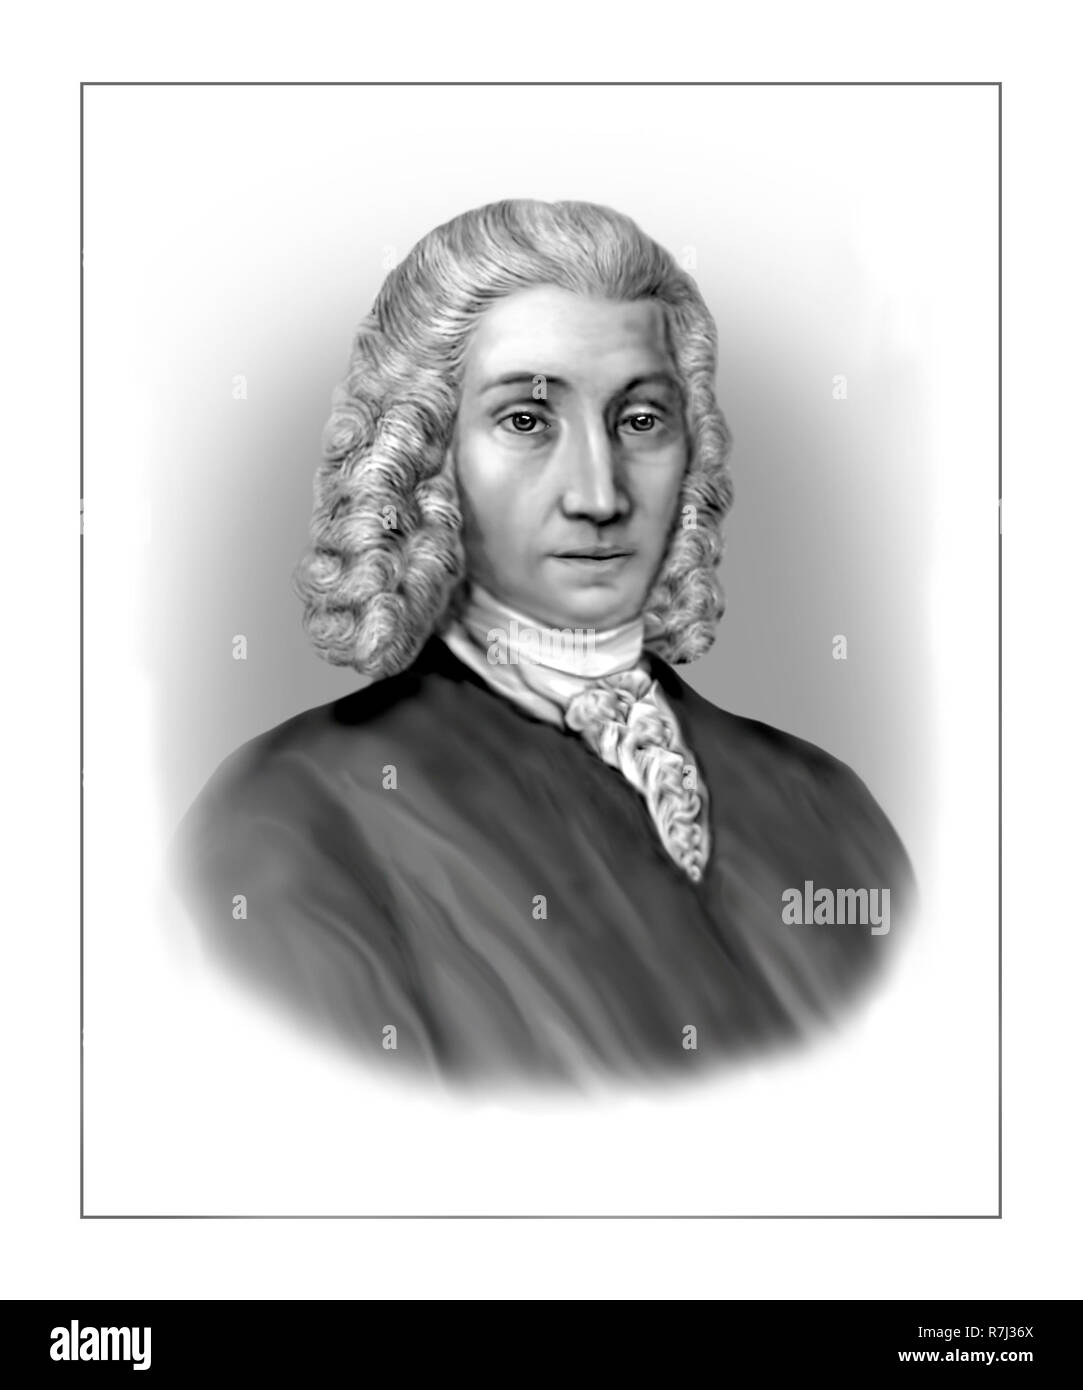 Anders Celsius  1701 - 1744  Swedish Astronomer Physicist Mathematician - Stock Image